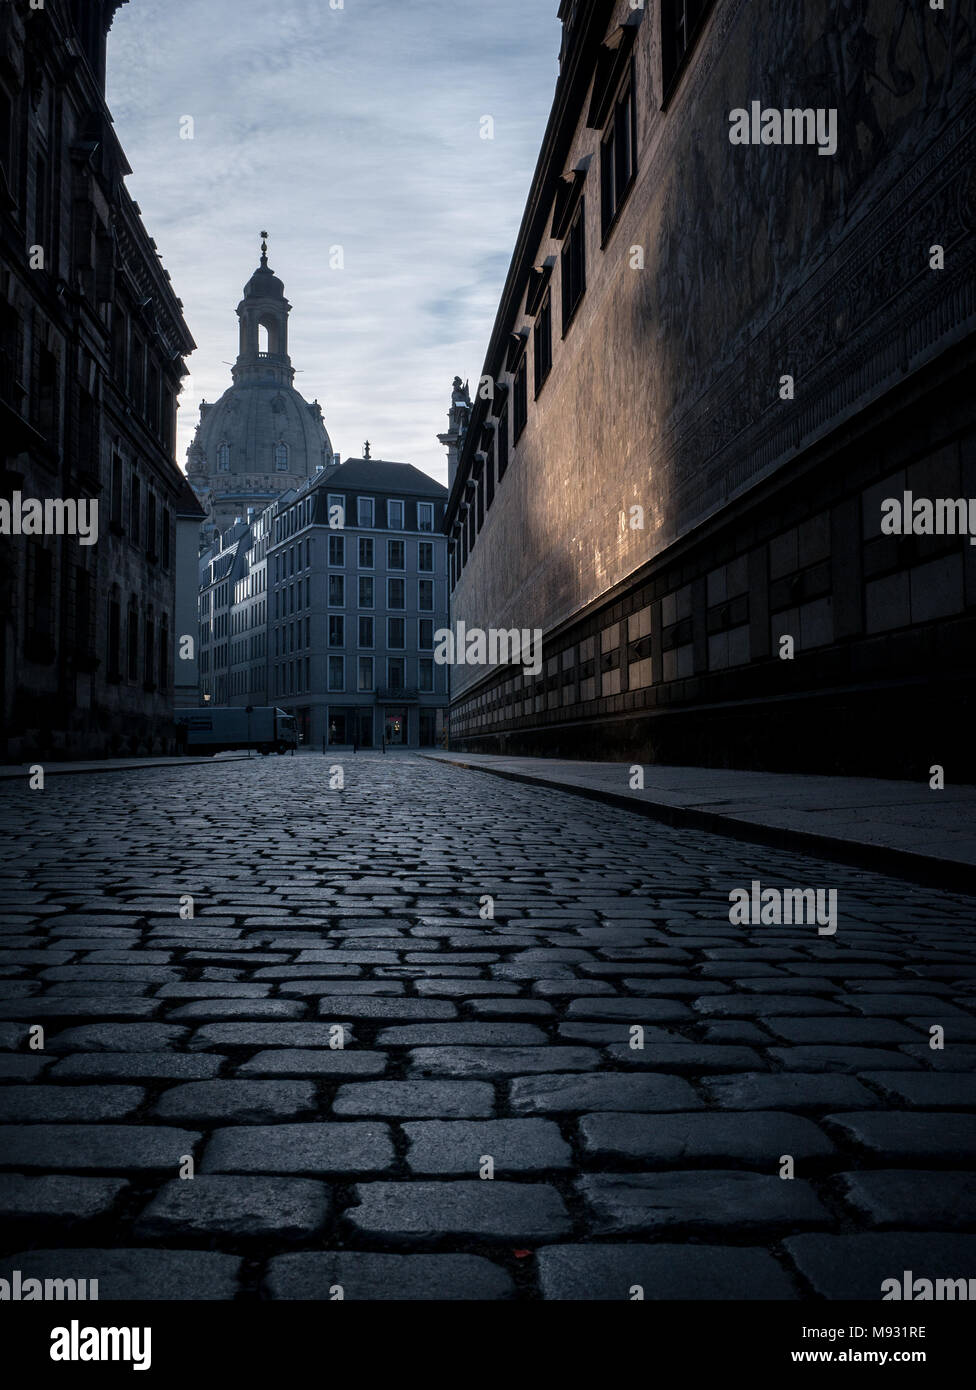 Our Lady's church / Church of Our Lady (Frauenkirche) in the early morning light, as seen from the Procession of Princes (Fürstenzug) -Dresden,Germany - Stock Image